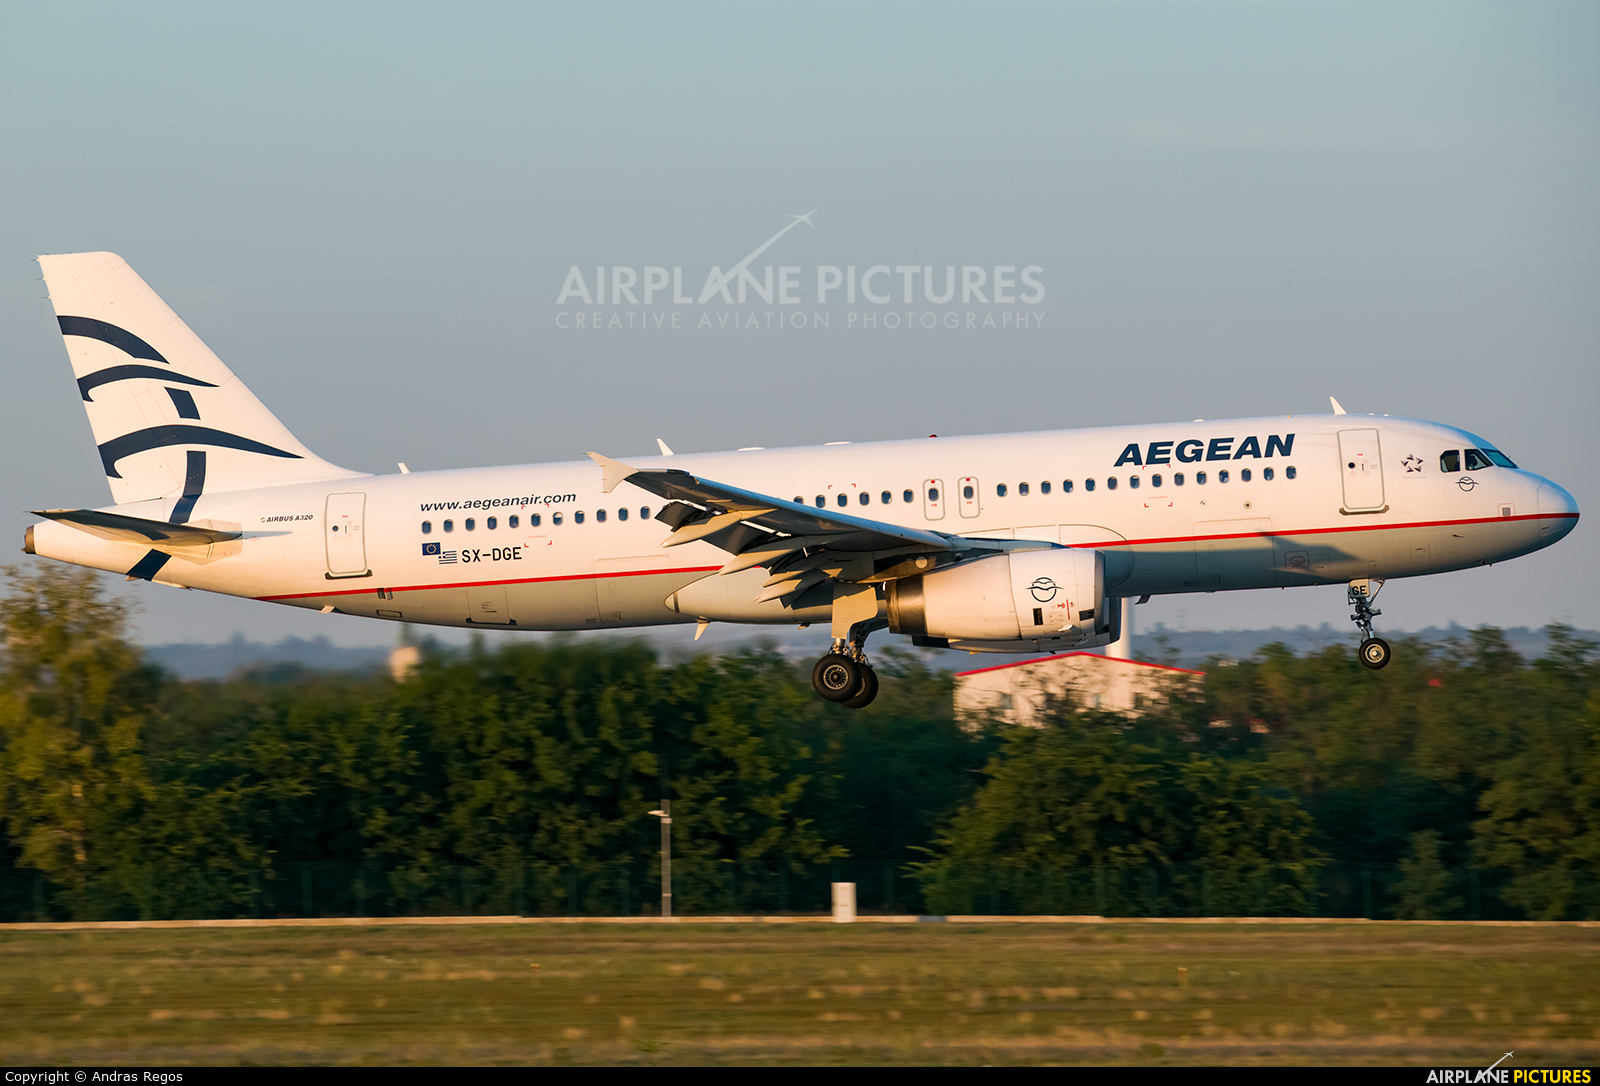 Aegean Airlines SX-DGE aircraft at Budapest Ferenc Liszt International Airport